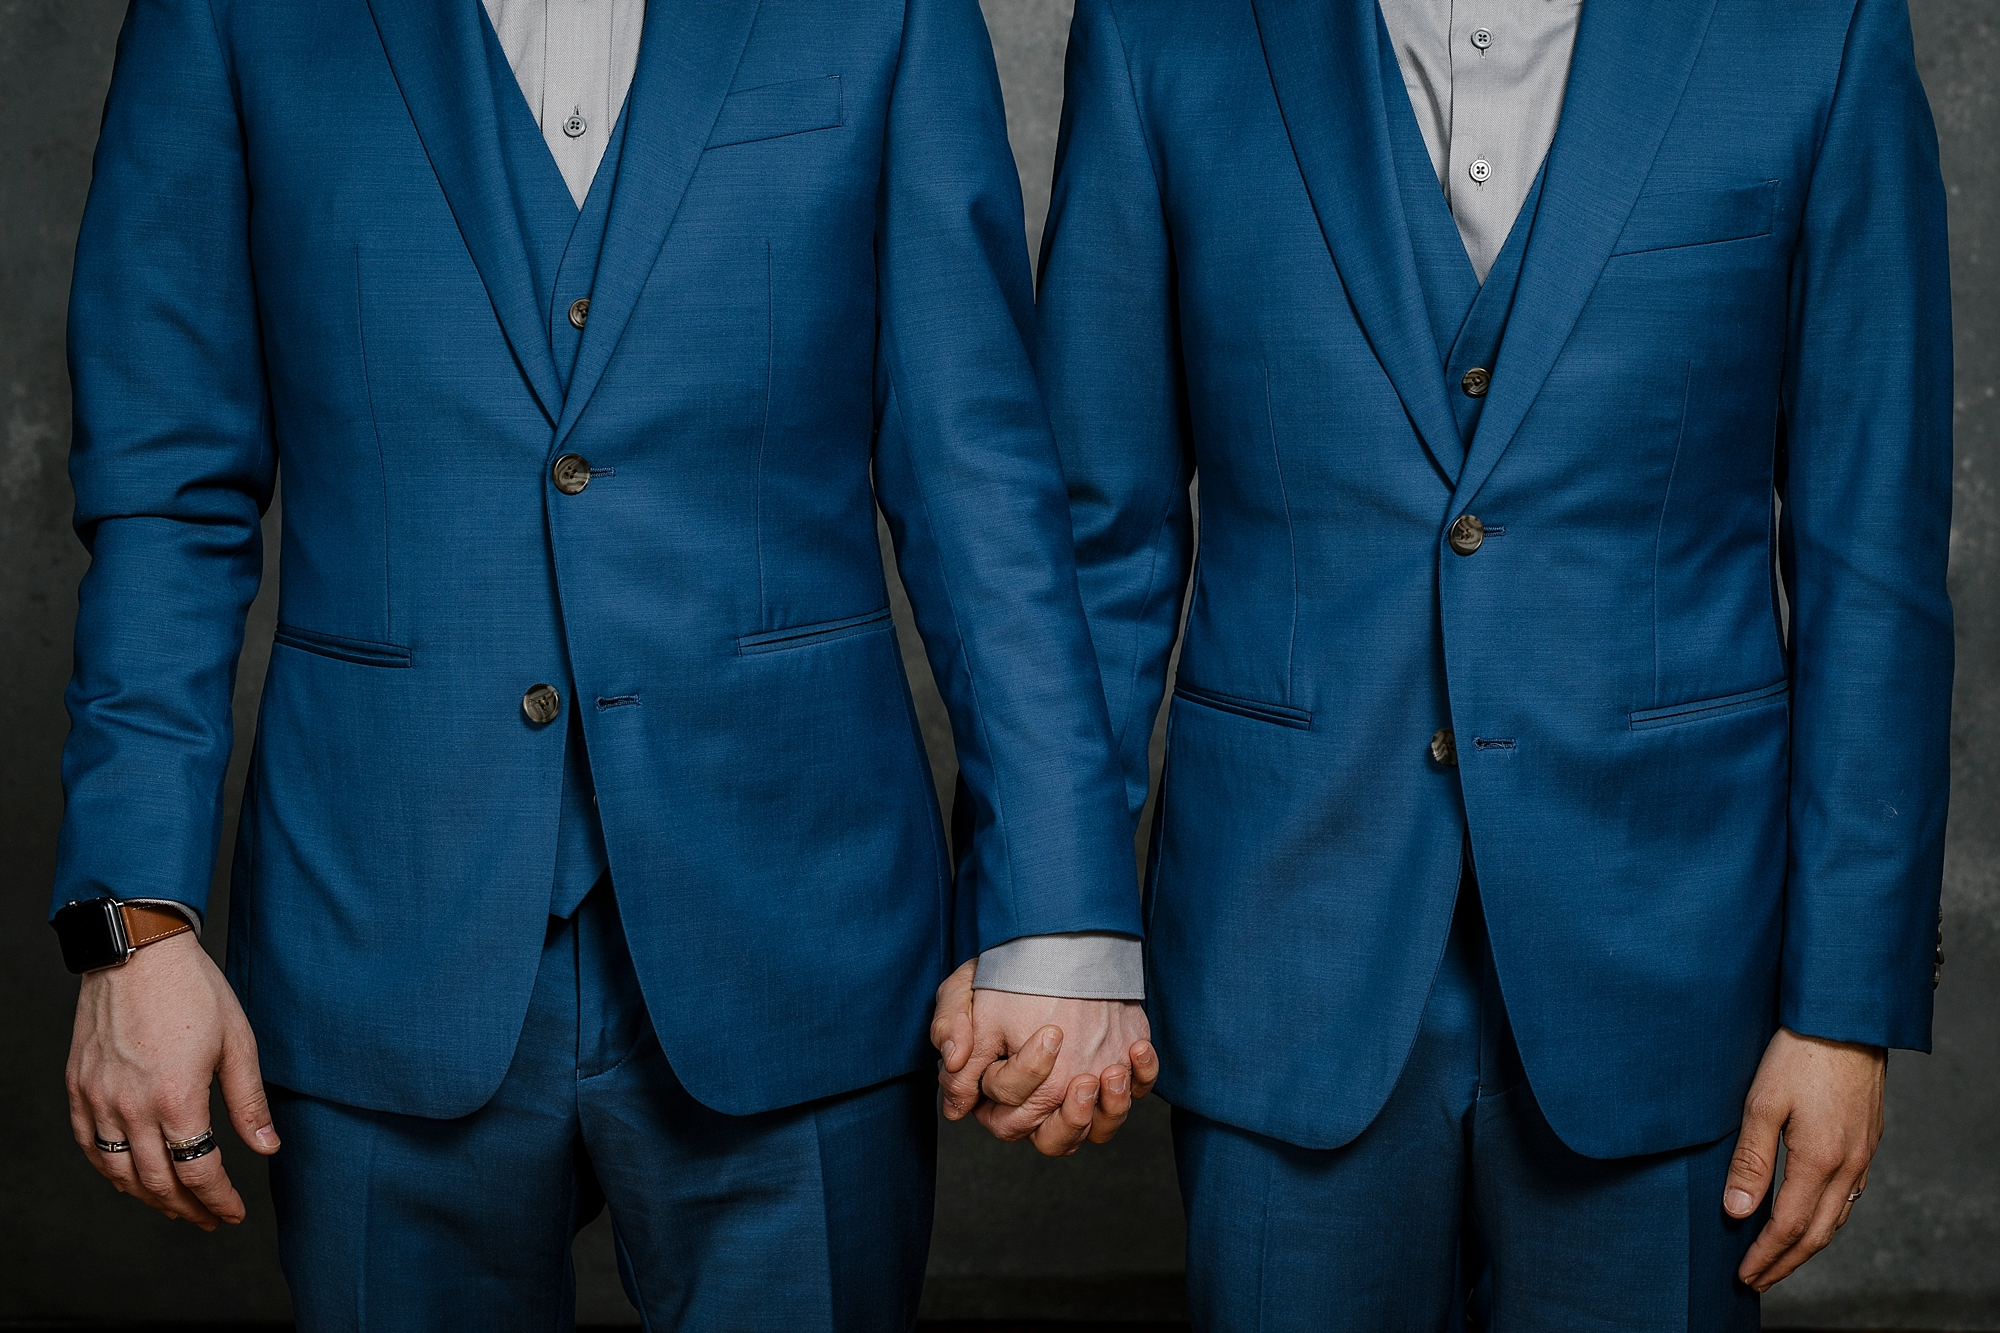 Joe_Mac_Creative_Philadelphia_Philly_LGBT_Gay_Engagement_Wedding_Photography__0091.jpg